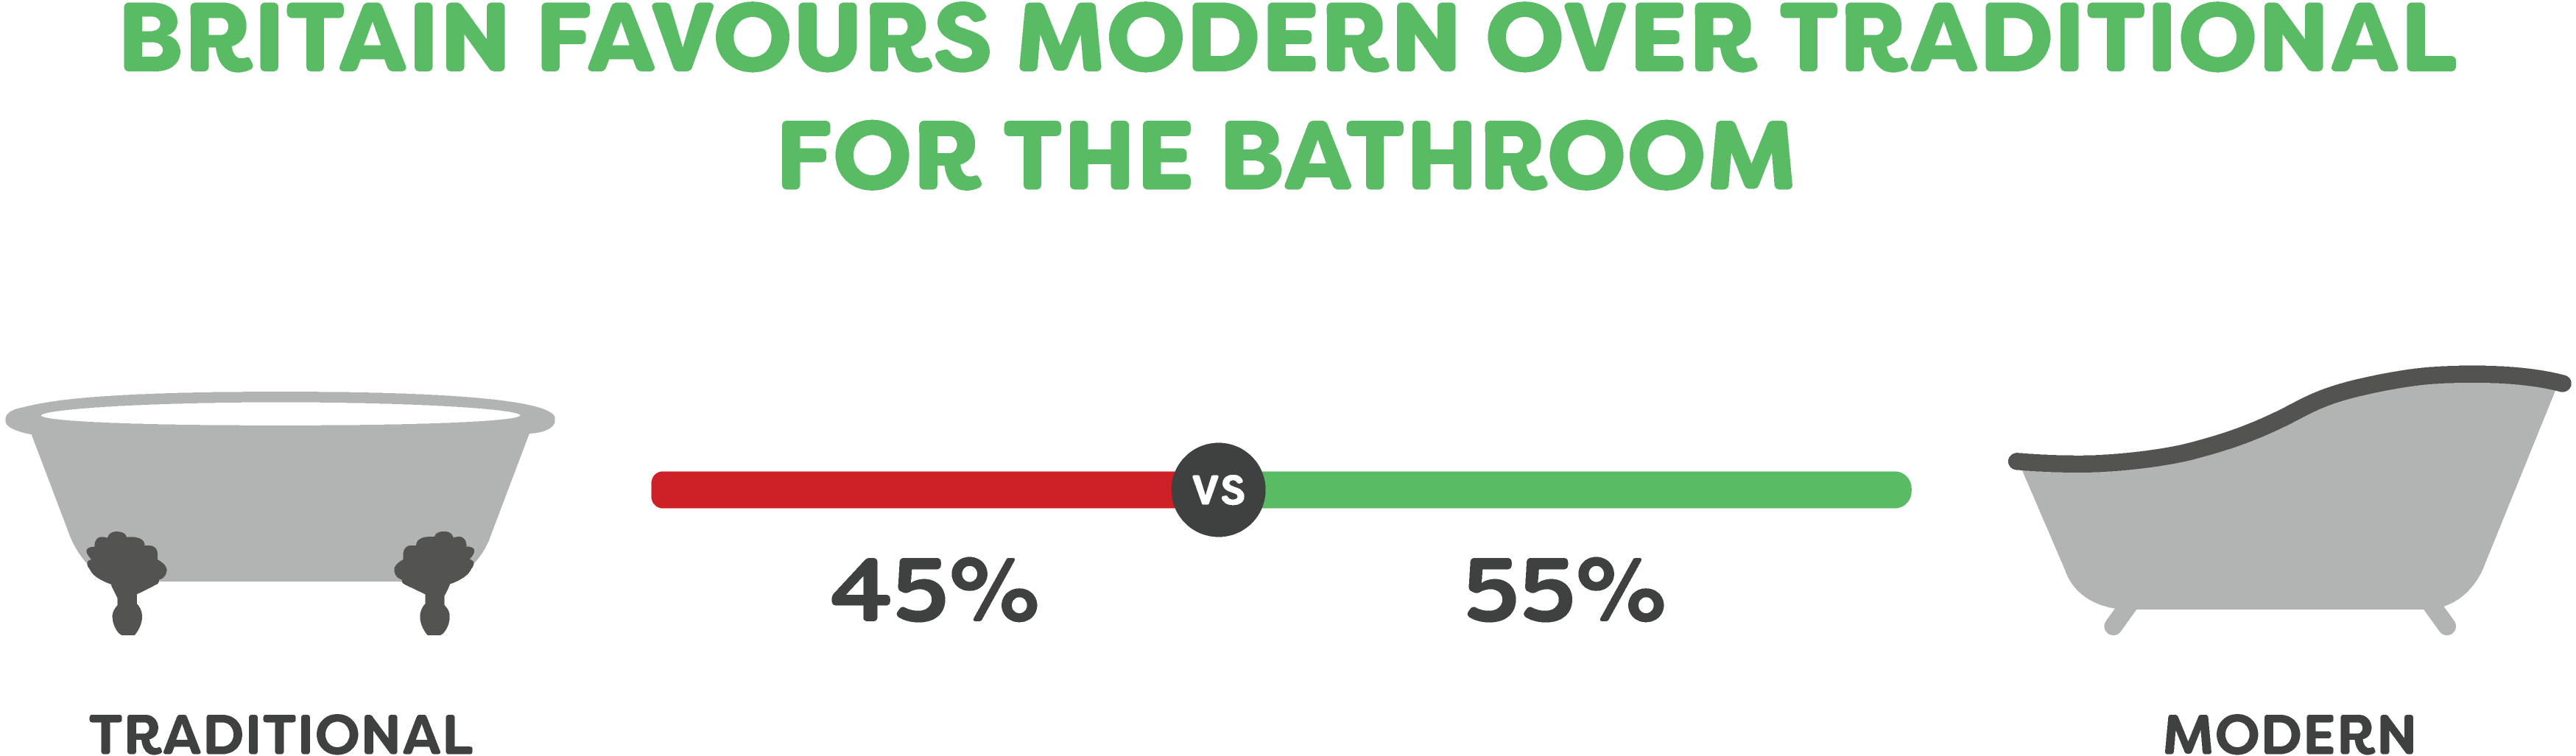 What? - Britain Favours Modern Over Traditional For The Bathroom - Britain's Bathrooms - When, What and DIY